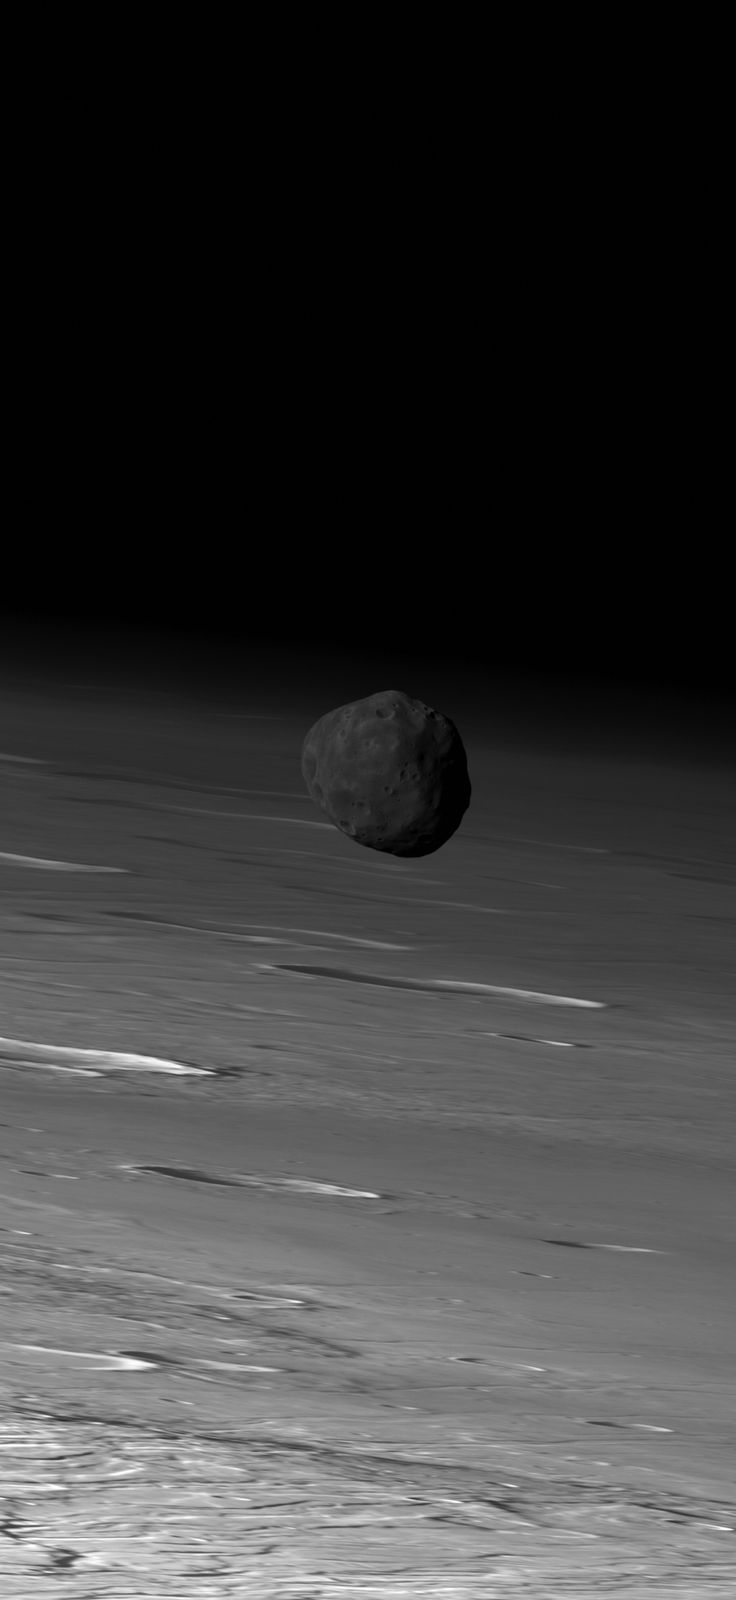 Phobos flying over the surface of Mars #space? Phobos is the larger and closer of the two natural satellites of Mars. Both moons were discovered in 1877. A small, irregularly shaped object with a mean radius of 11 km, Phobos is seven times bigger than Mars' outer moon, Deimos. Wikipedia